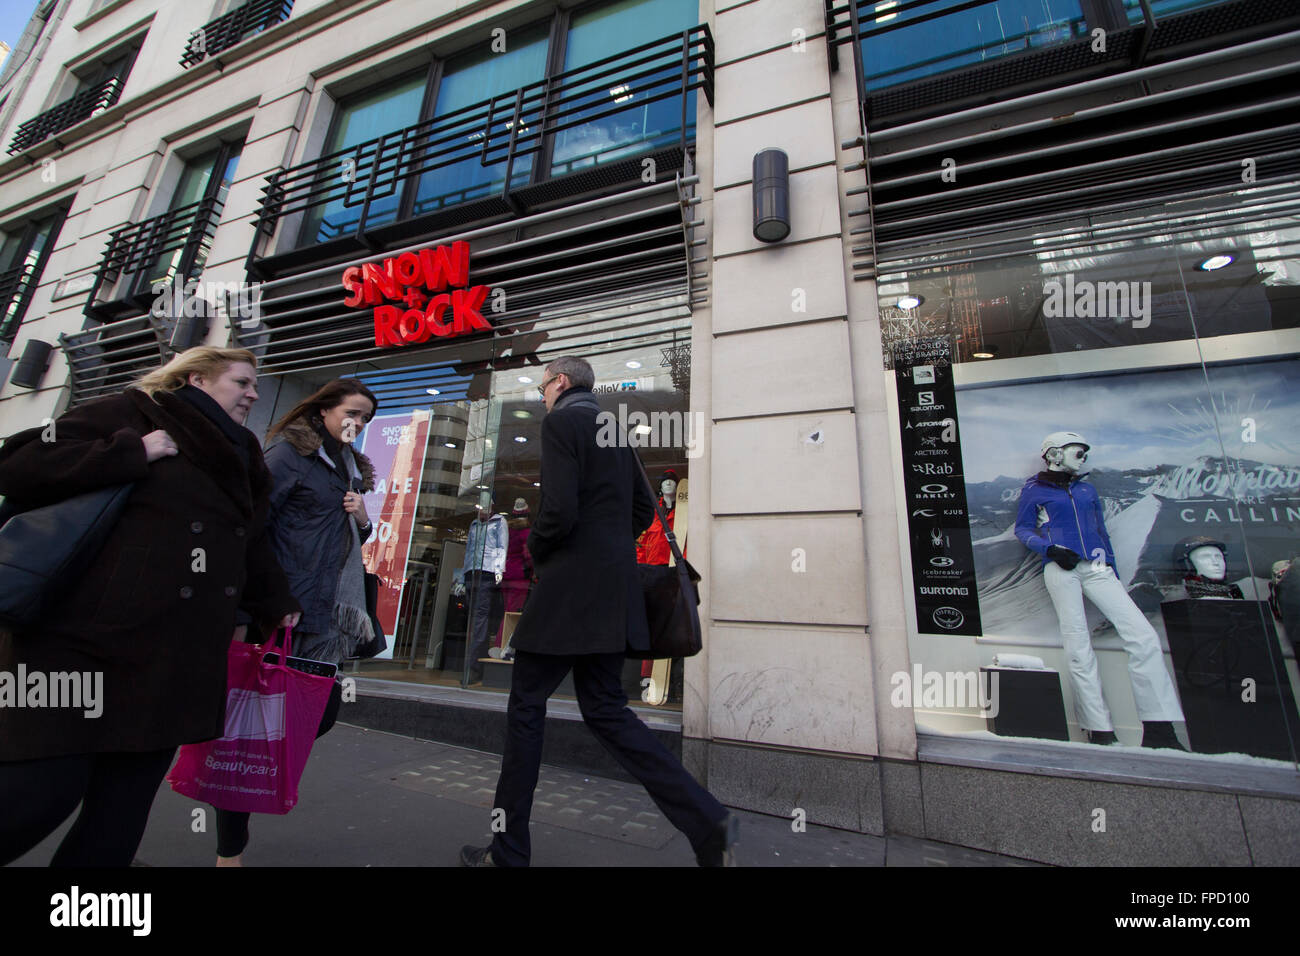 Snow and Rock outdoor sports retail outlet, London, UK - Stock Image